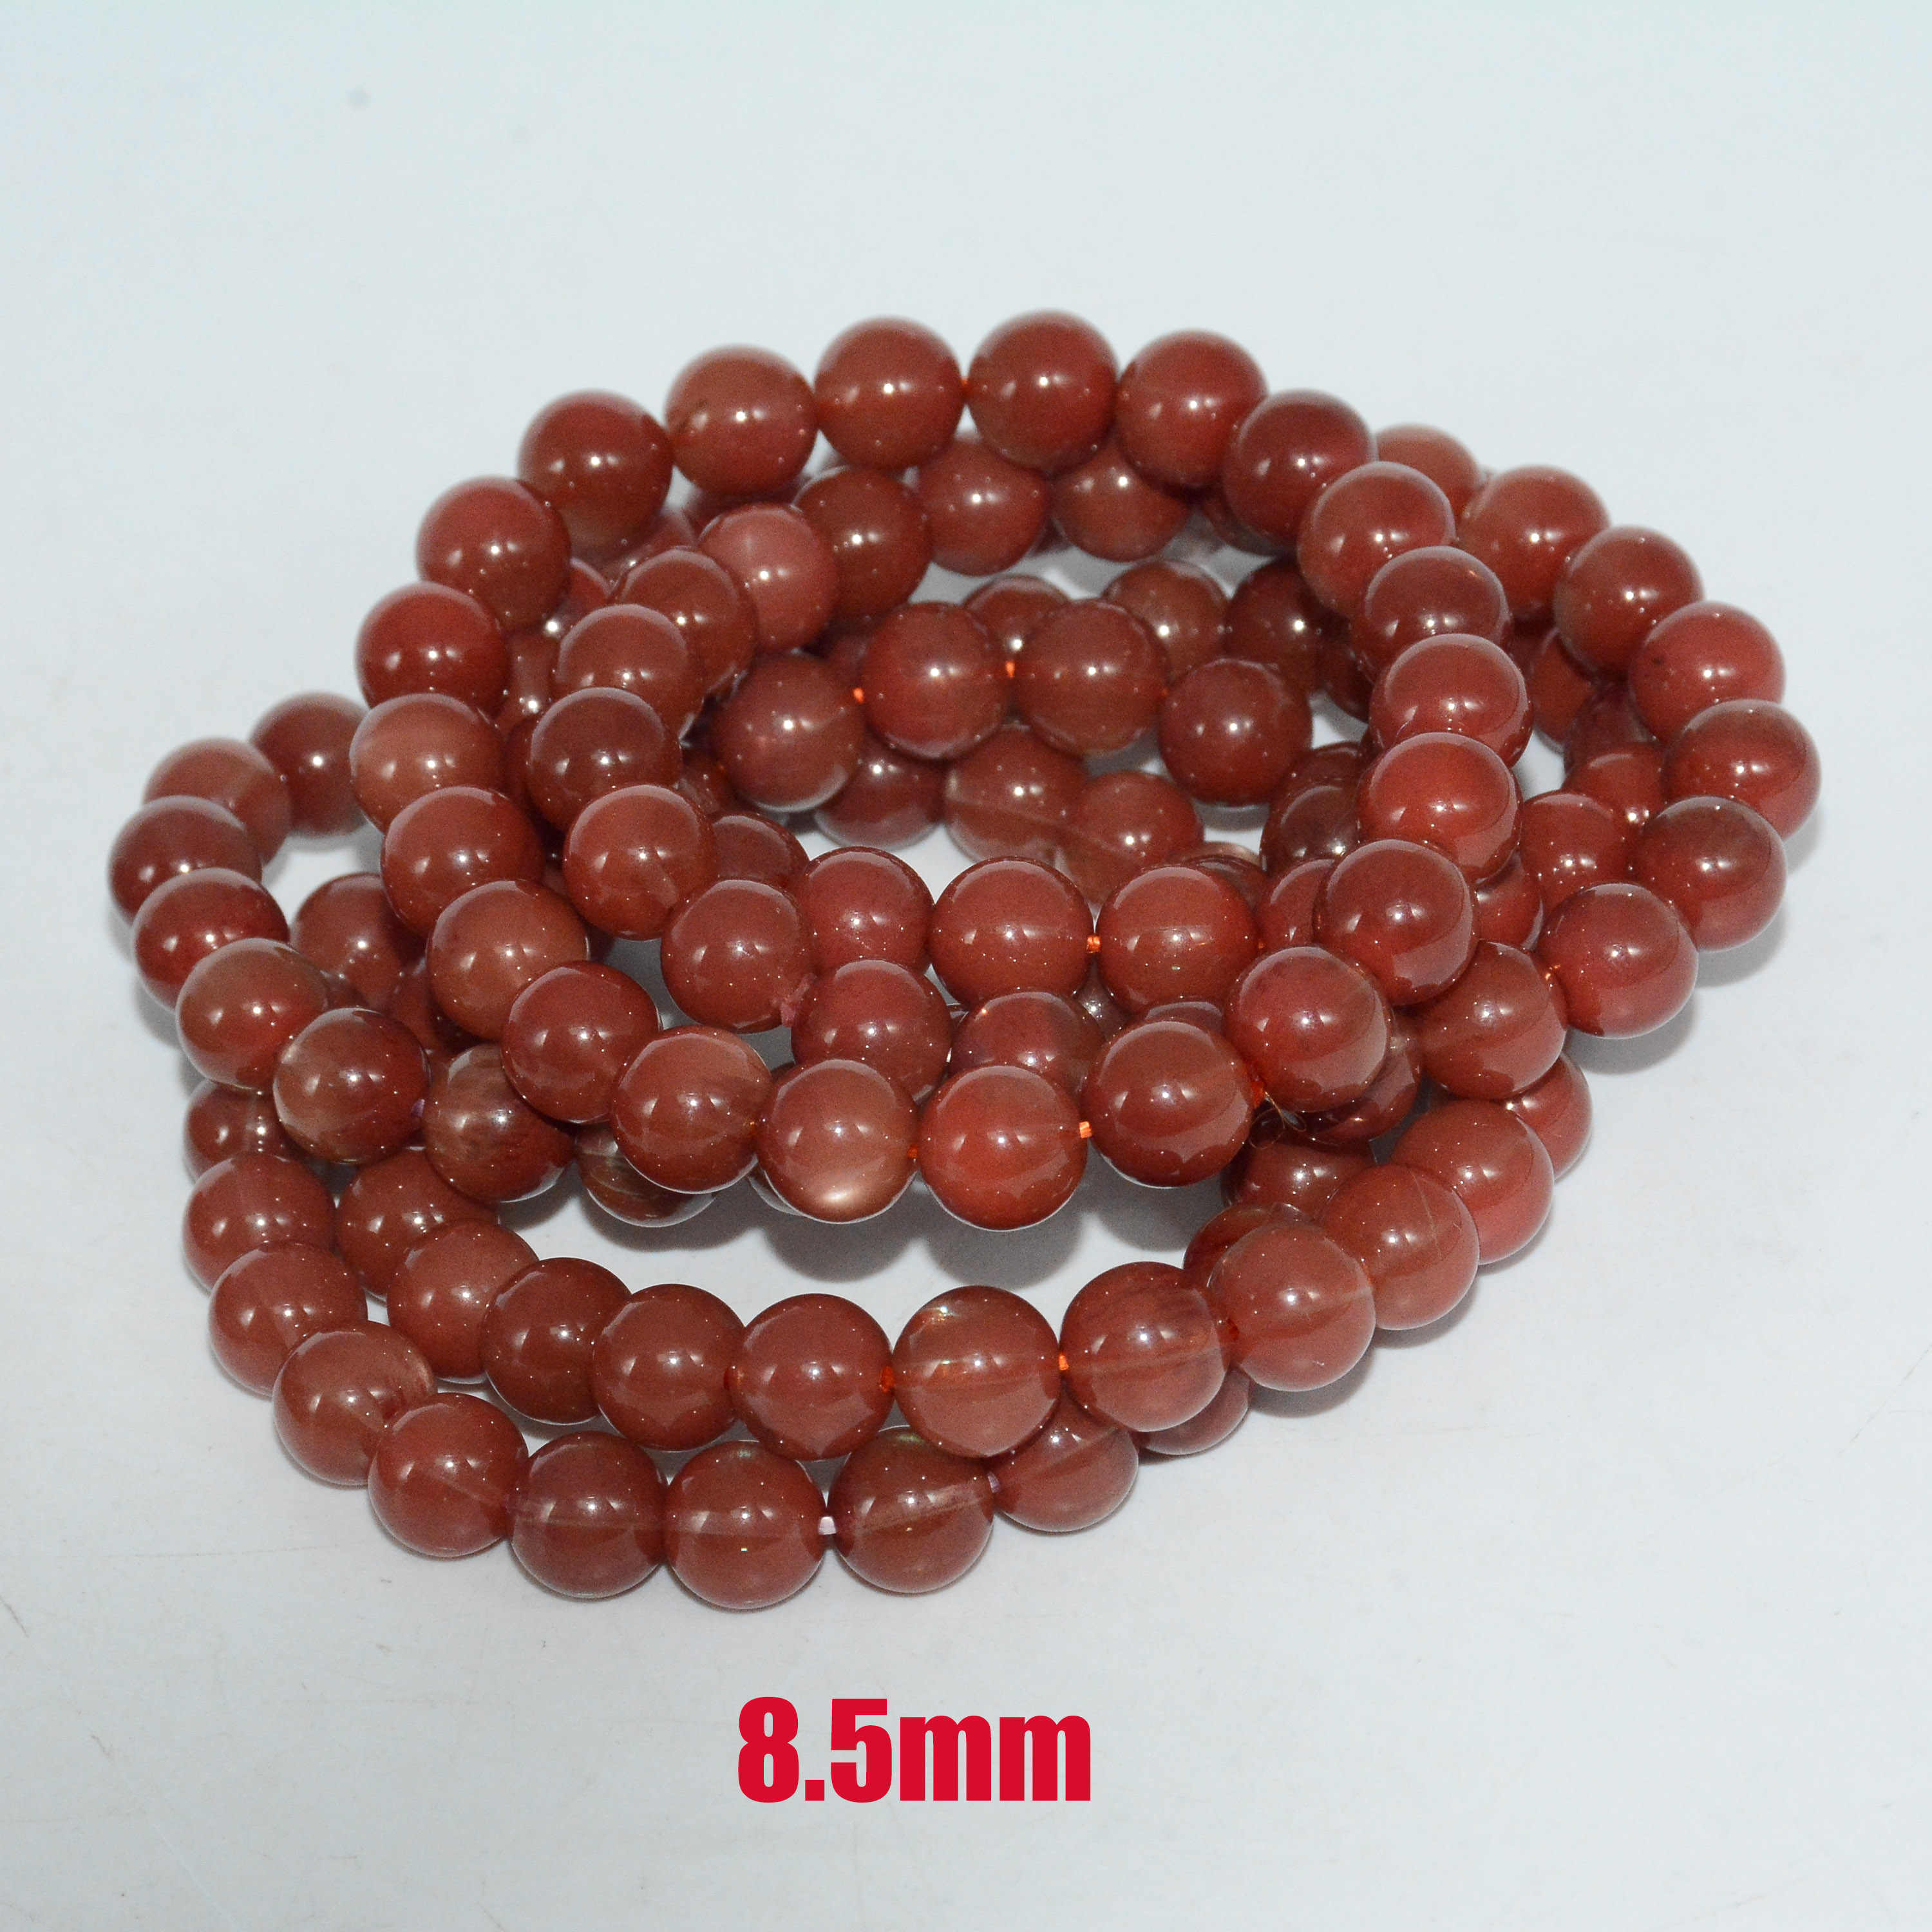 3.5 to 5.5 mm Andesine Faceted Beads Andesine 8 Inch 20 Cm Full Strand Gem Quality Price Per Strand